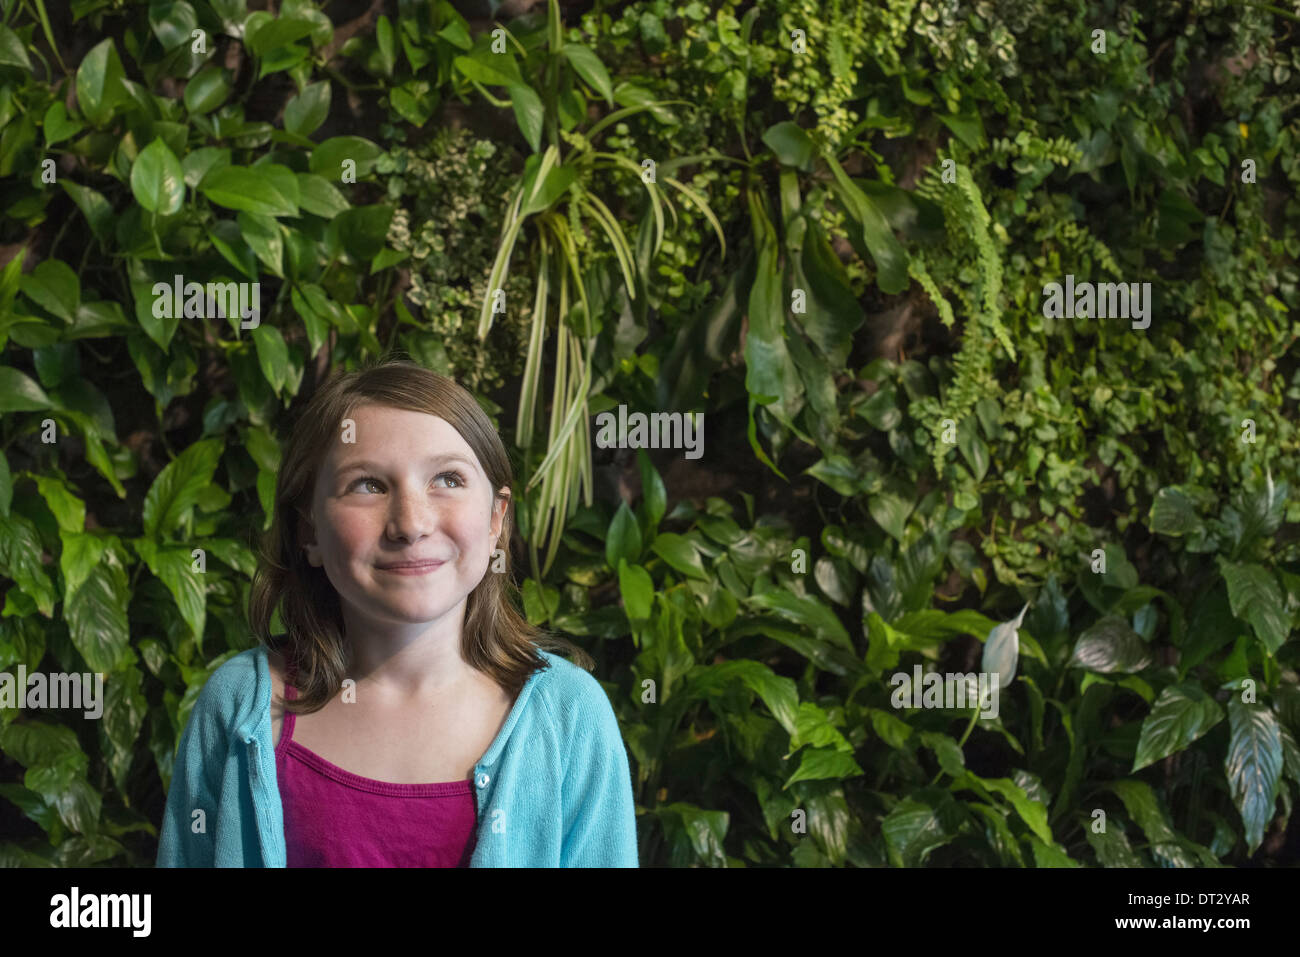 city in spring An urban lifestyle A young girl standing in front of a wall covered with ferns and climbing plants - Stock Image